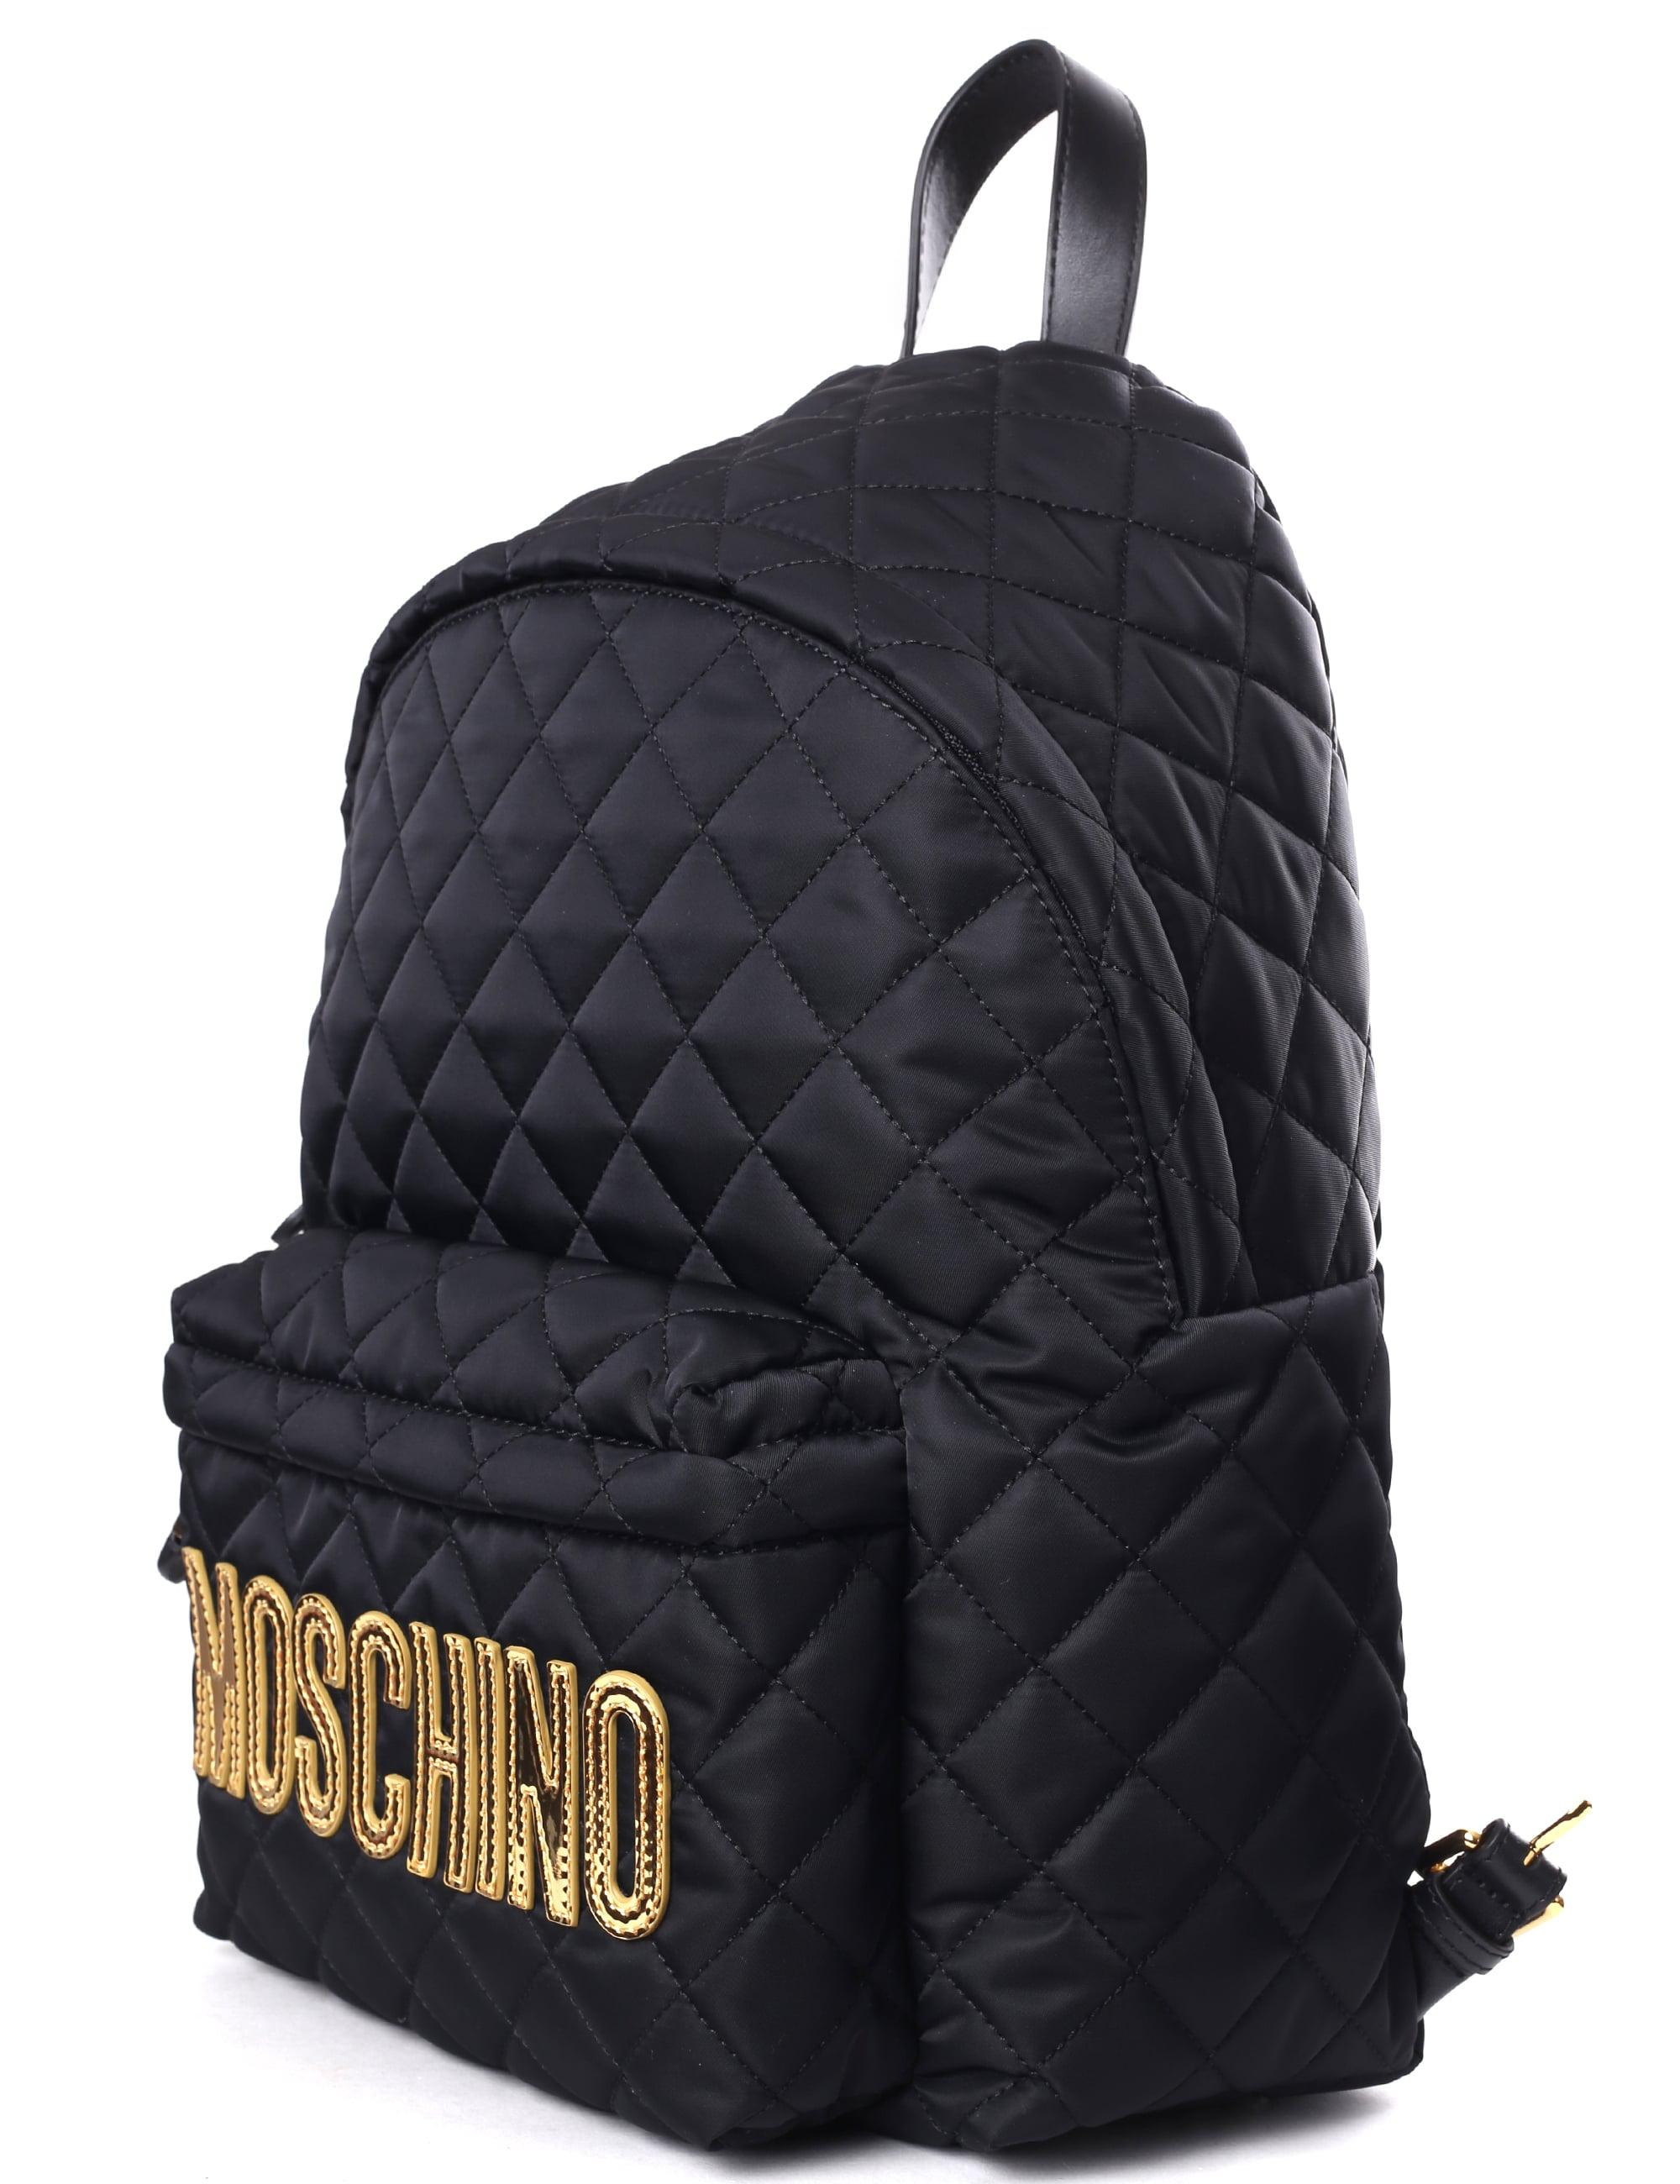 96fa888698 Moschino Couture Quilted Women s Logo Backpack Black in Black - Lyst